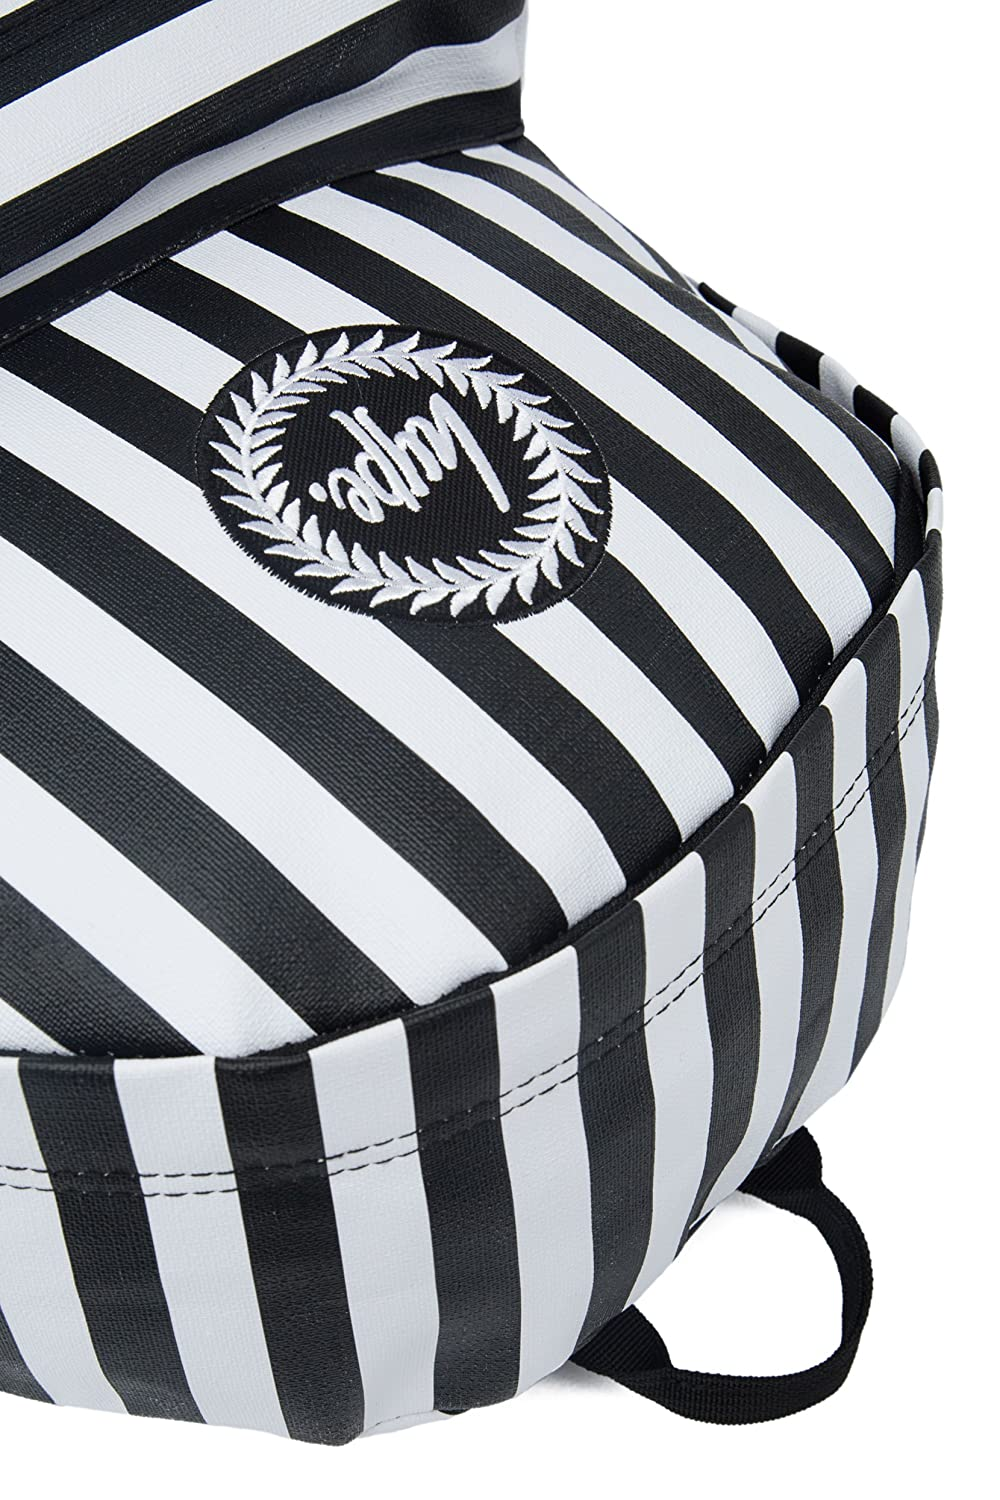 f90cb25880 Just Hype Humbug Backpack Black White  Amazon.co.uk  Clothing